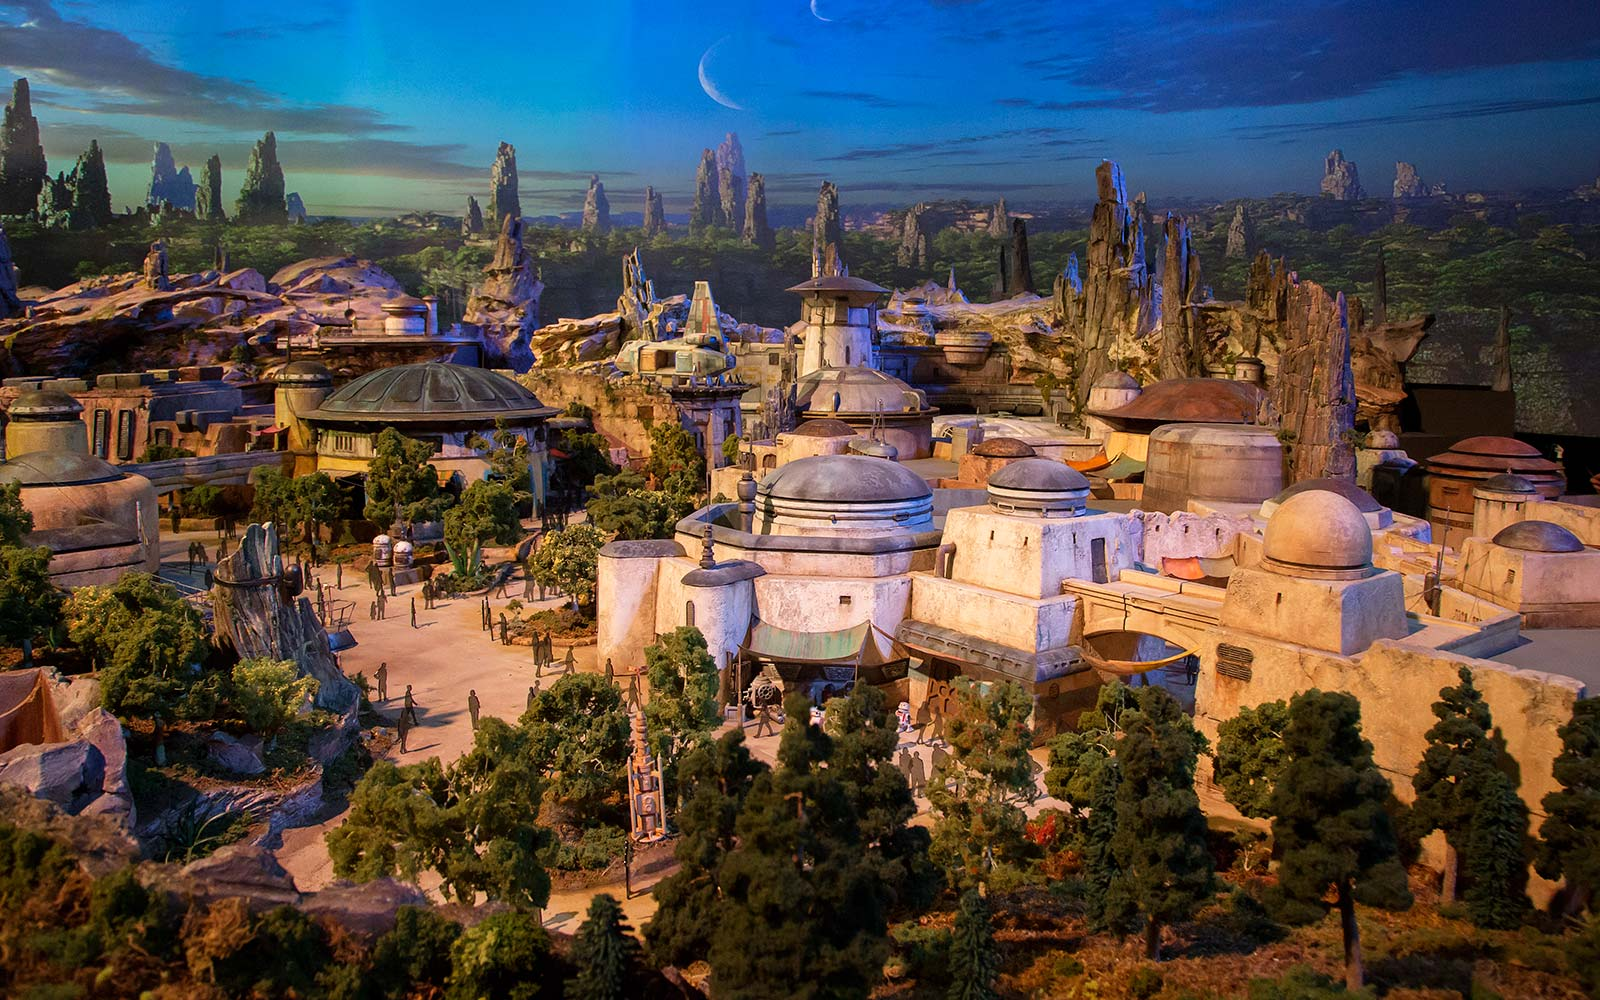 The epic, fully detailed model of theStar Wars-themed lands under development at Disneyland park in Anaheim, Calif. and Disney's Hollywood Studios in Orlando, Fla. remains on display in Walt Disney Parks